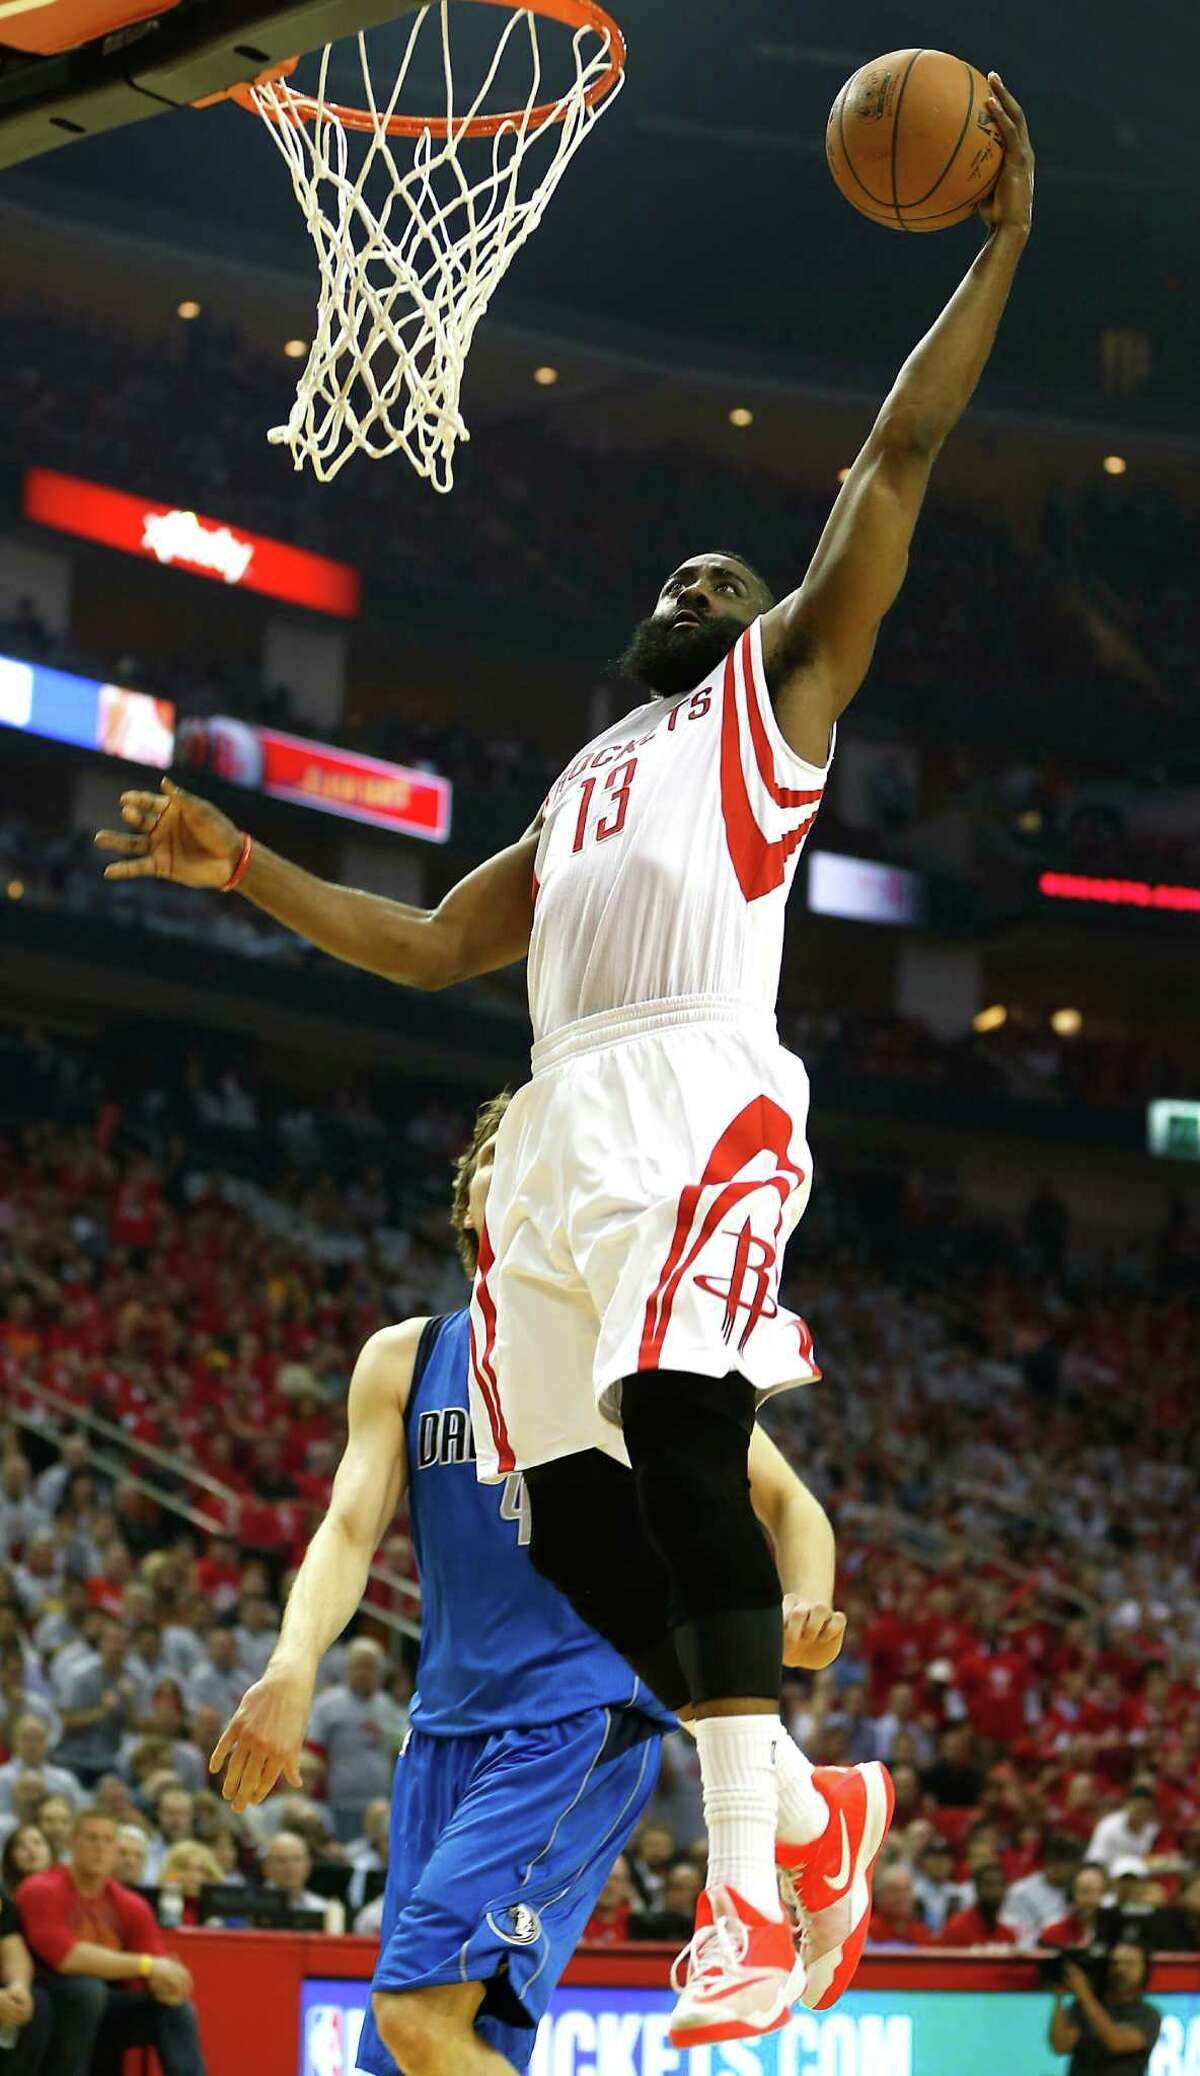 Houston Rockets guard James Harden heads to the basket during the first half of Game 2 in the first round of NBA basketball playoffs against the Dallas Mavericks at the Toyota Center Tuesday, April 21, 2015, in Houston. ( James Nielsen / Houston Chronicle )